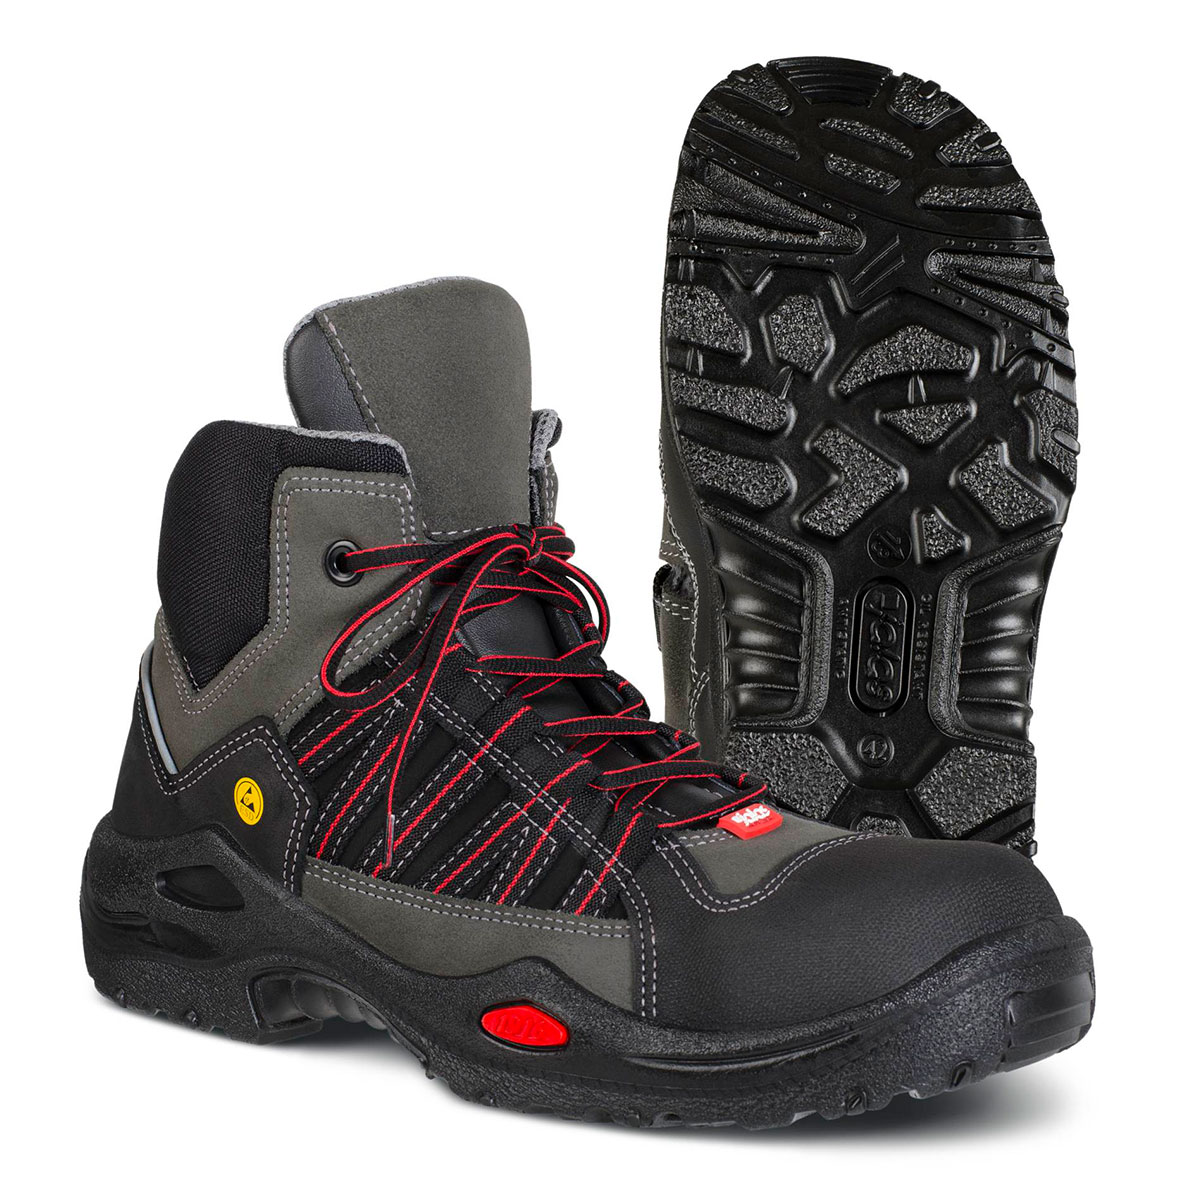 """JALAS® 1625 by Ejendals: """"E-SPORT"""" - Lightweight, Flexible & Innovative Gen. Purpose In/Outdoor S3 Full Safety Boot"""